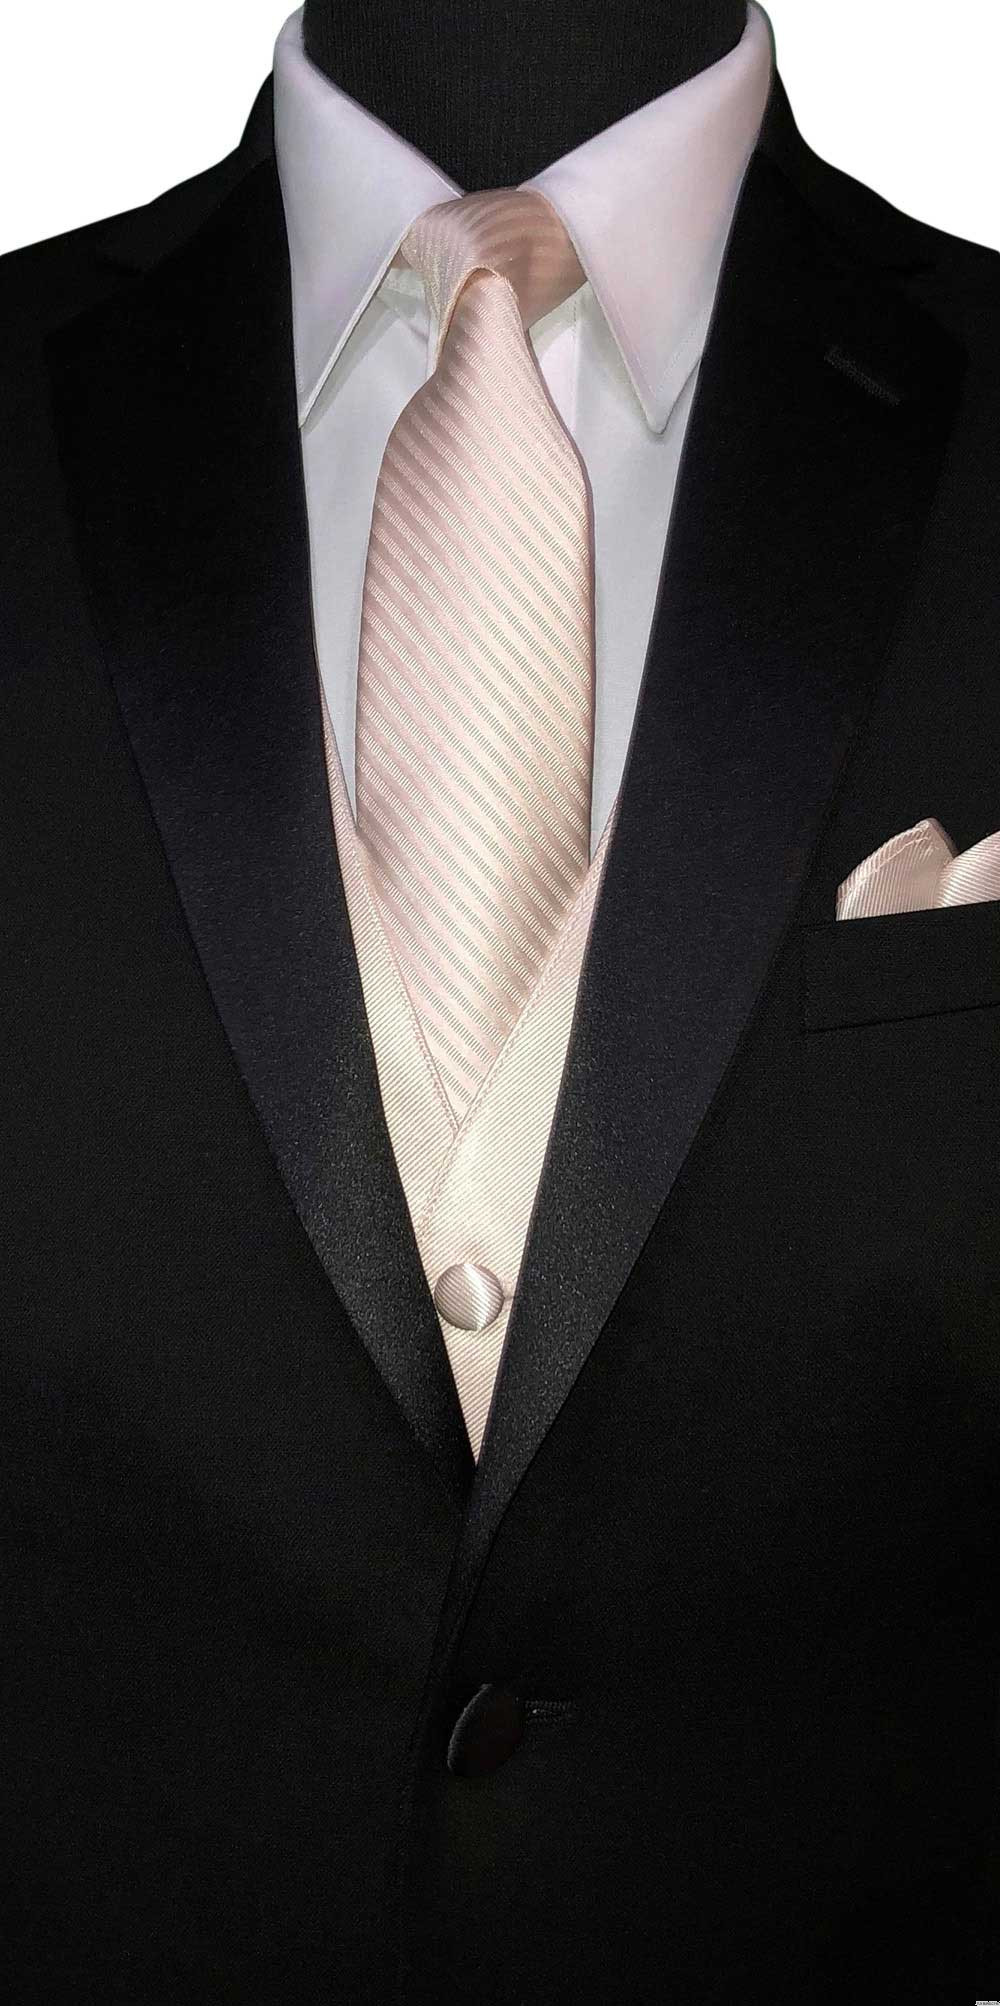 nude dress tie and pocket square